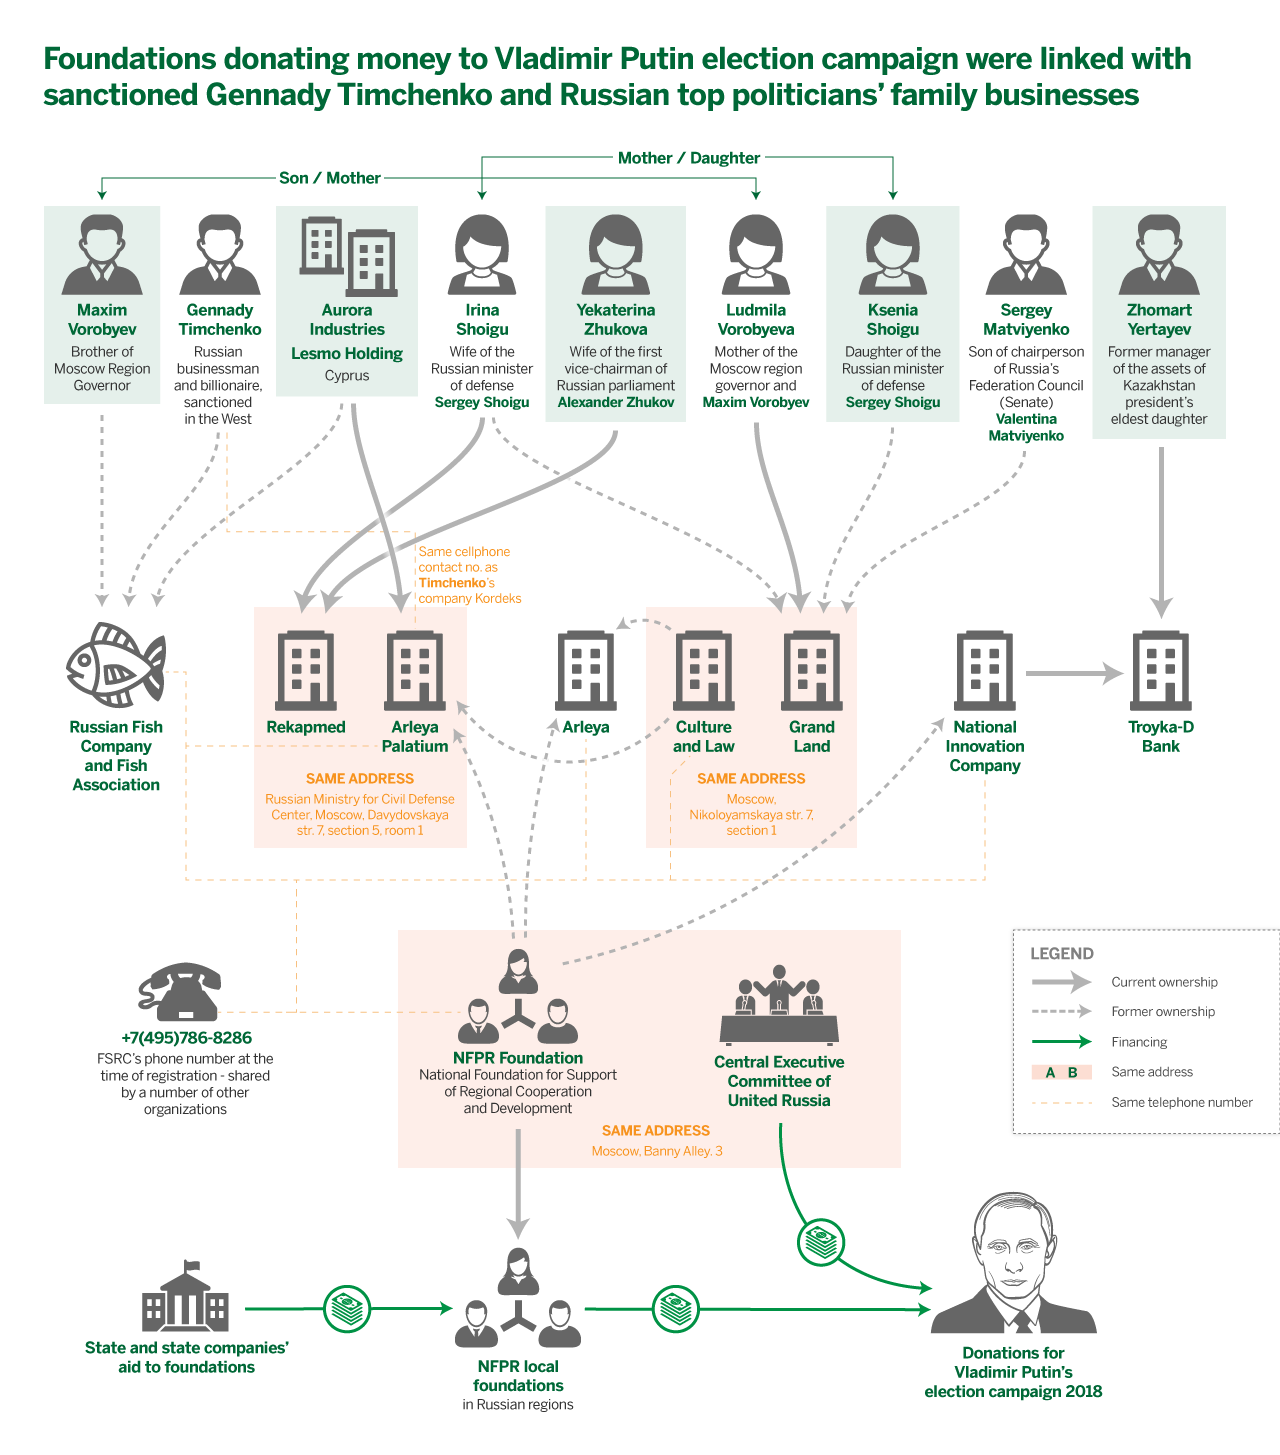 The ties that bind: shared telephone numbers and addresses link the ostensibly independent foundations donating to Putin's election campaign to a number of high-profile Russian businessmen, politicians, and their families. Photo: Edin Pasovic / OCCRP